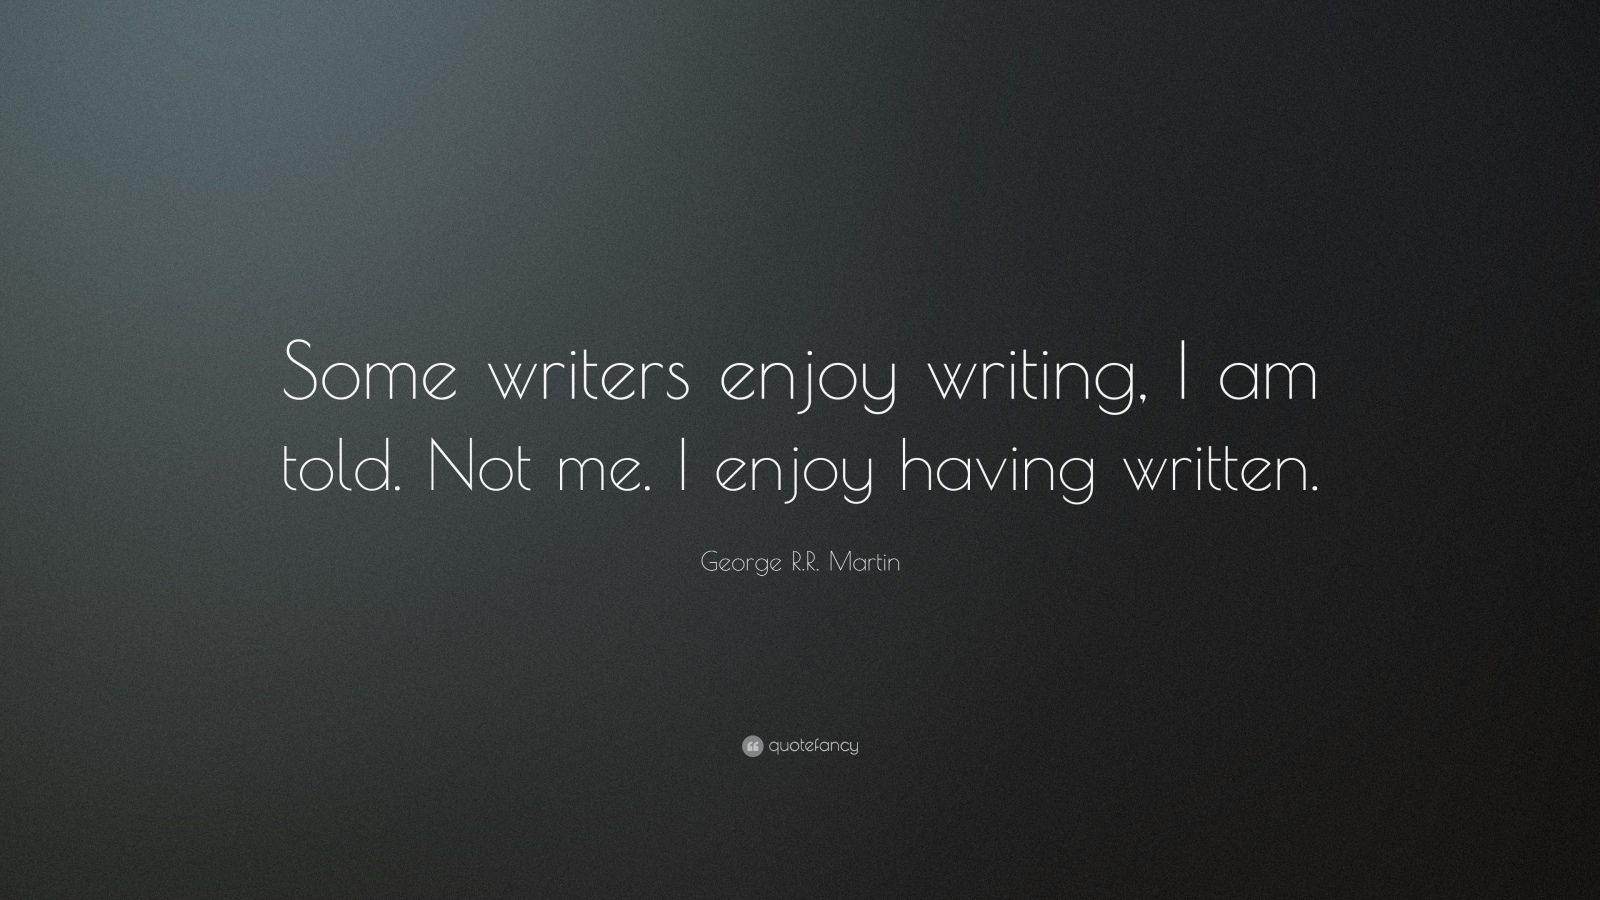 quote on writing Writing quotes from brainyquote, an extensive collection of quotations by famous authors, celebrities, and newsmakers.